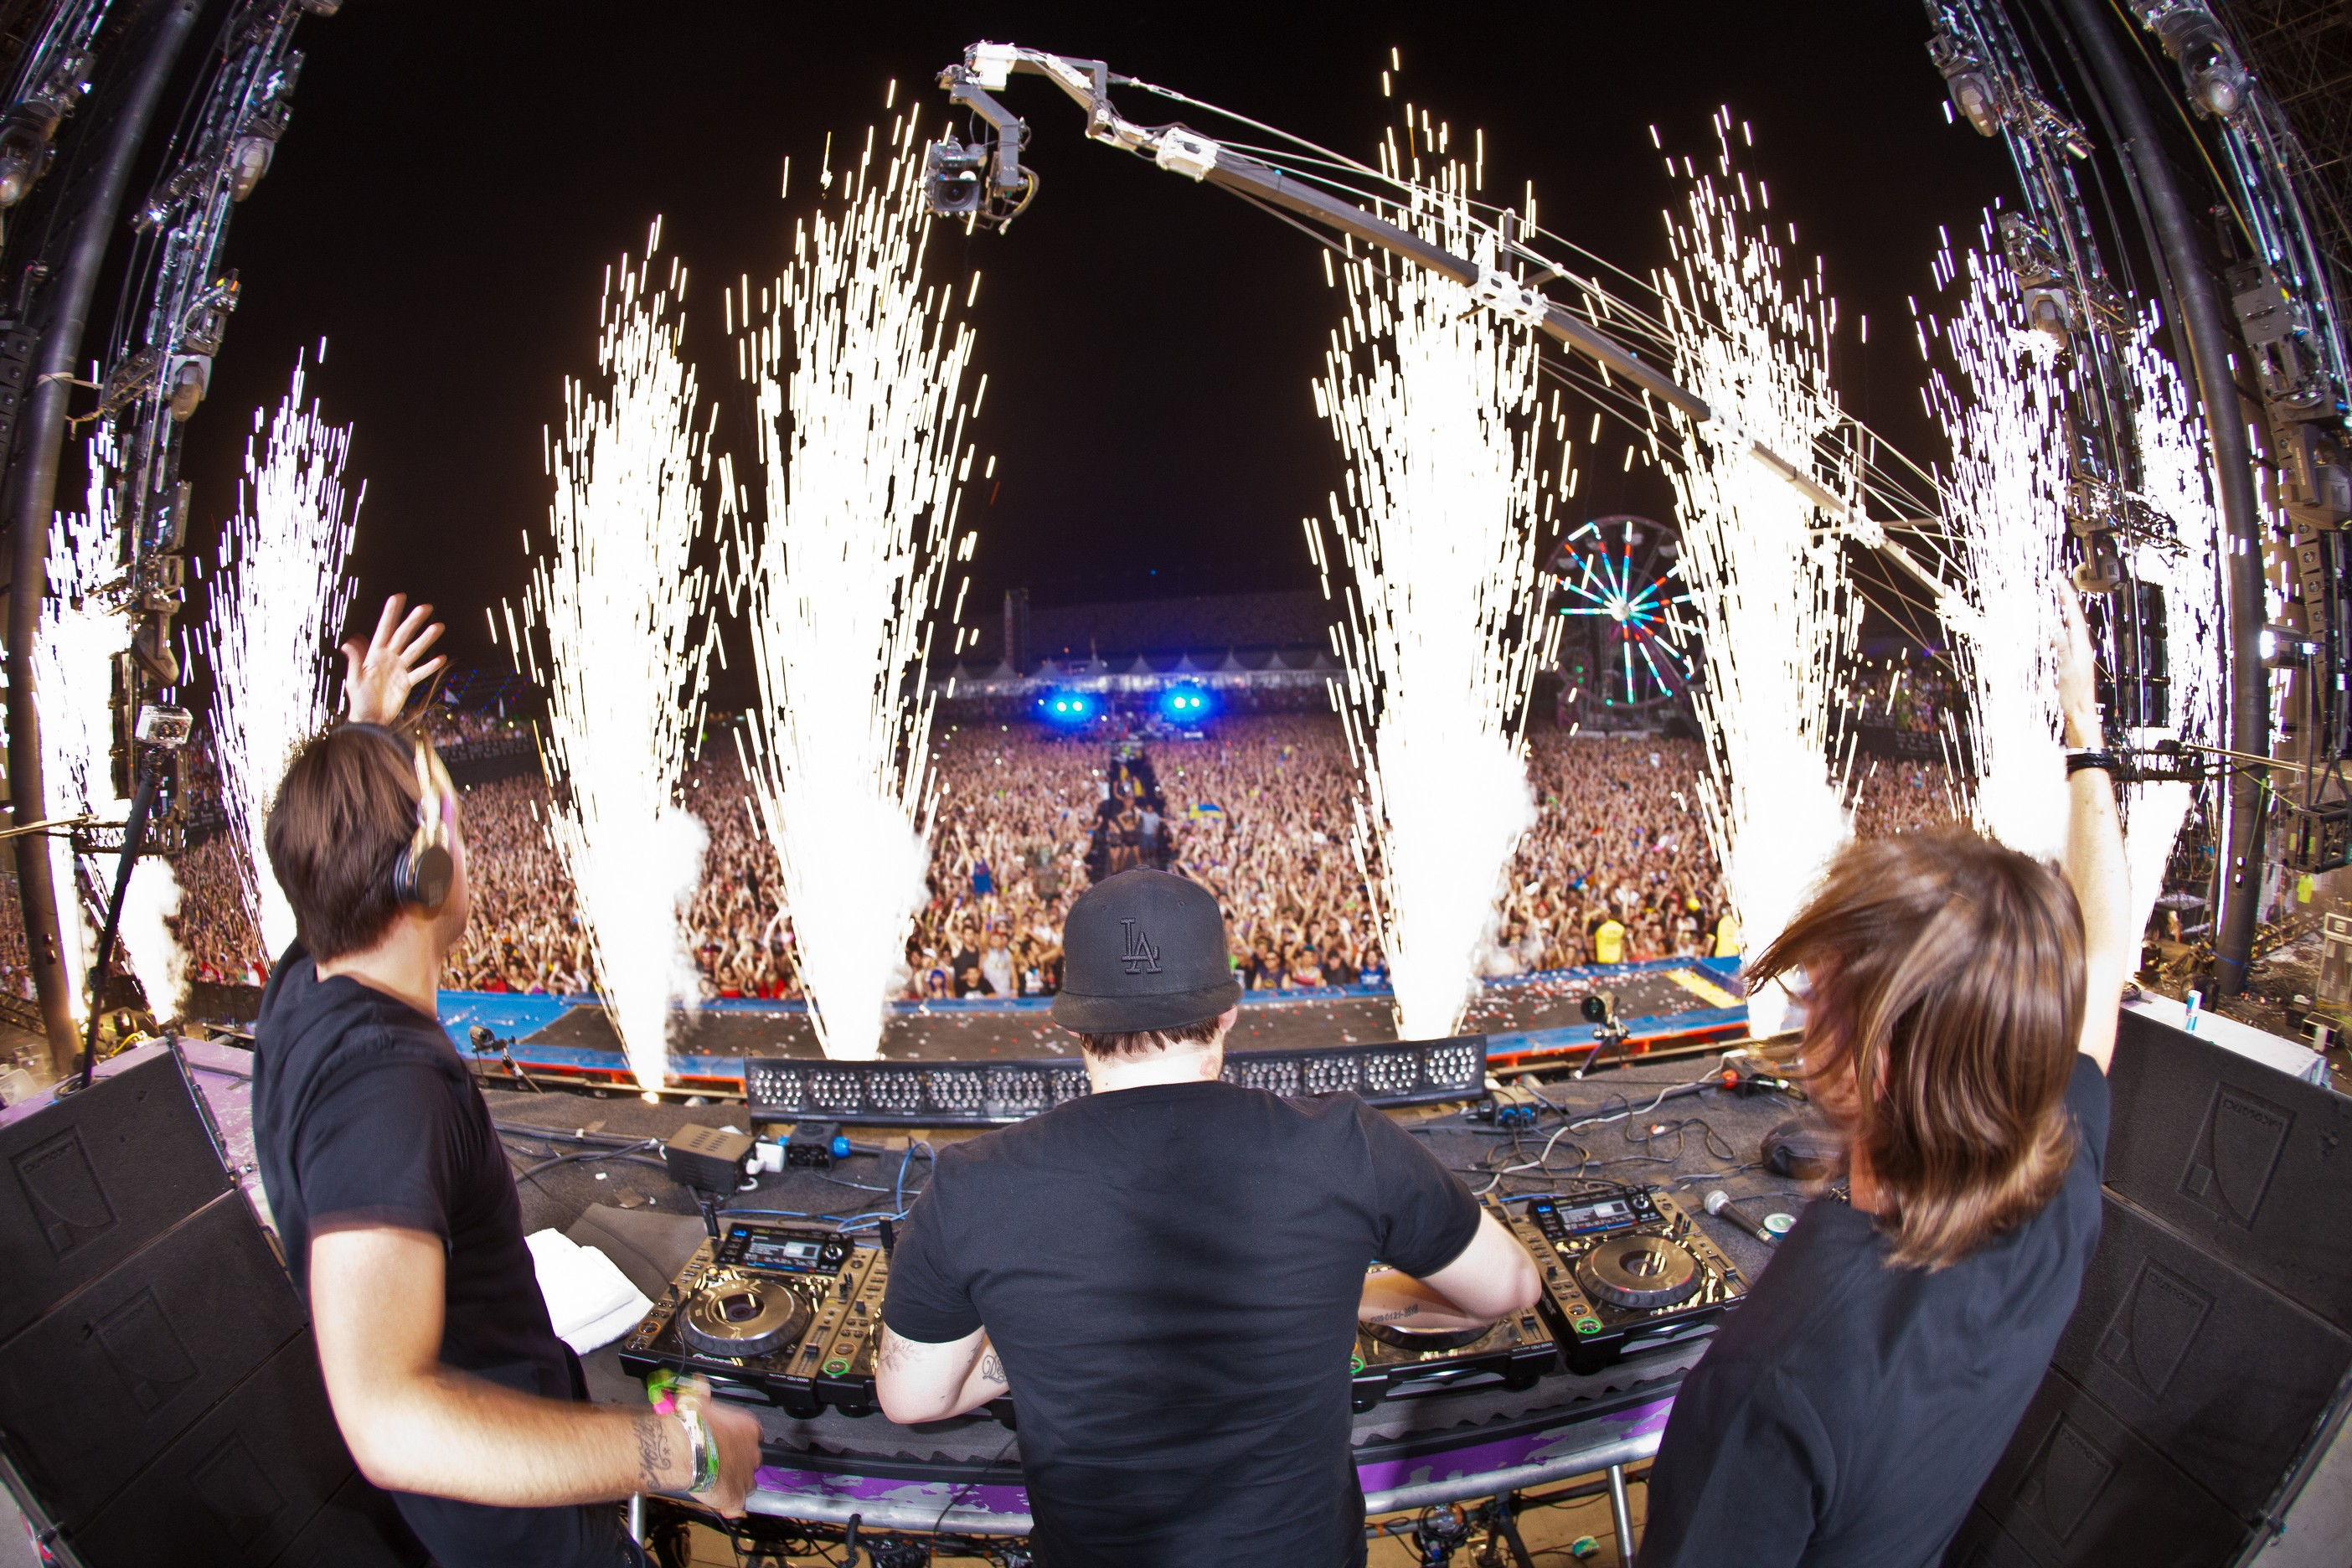 Swedish House Mafia at Electric Daisy Carnival's main stage in June 2011.